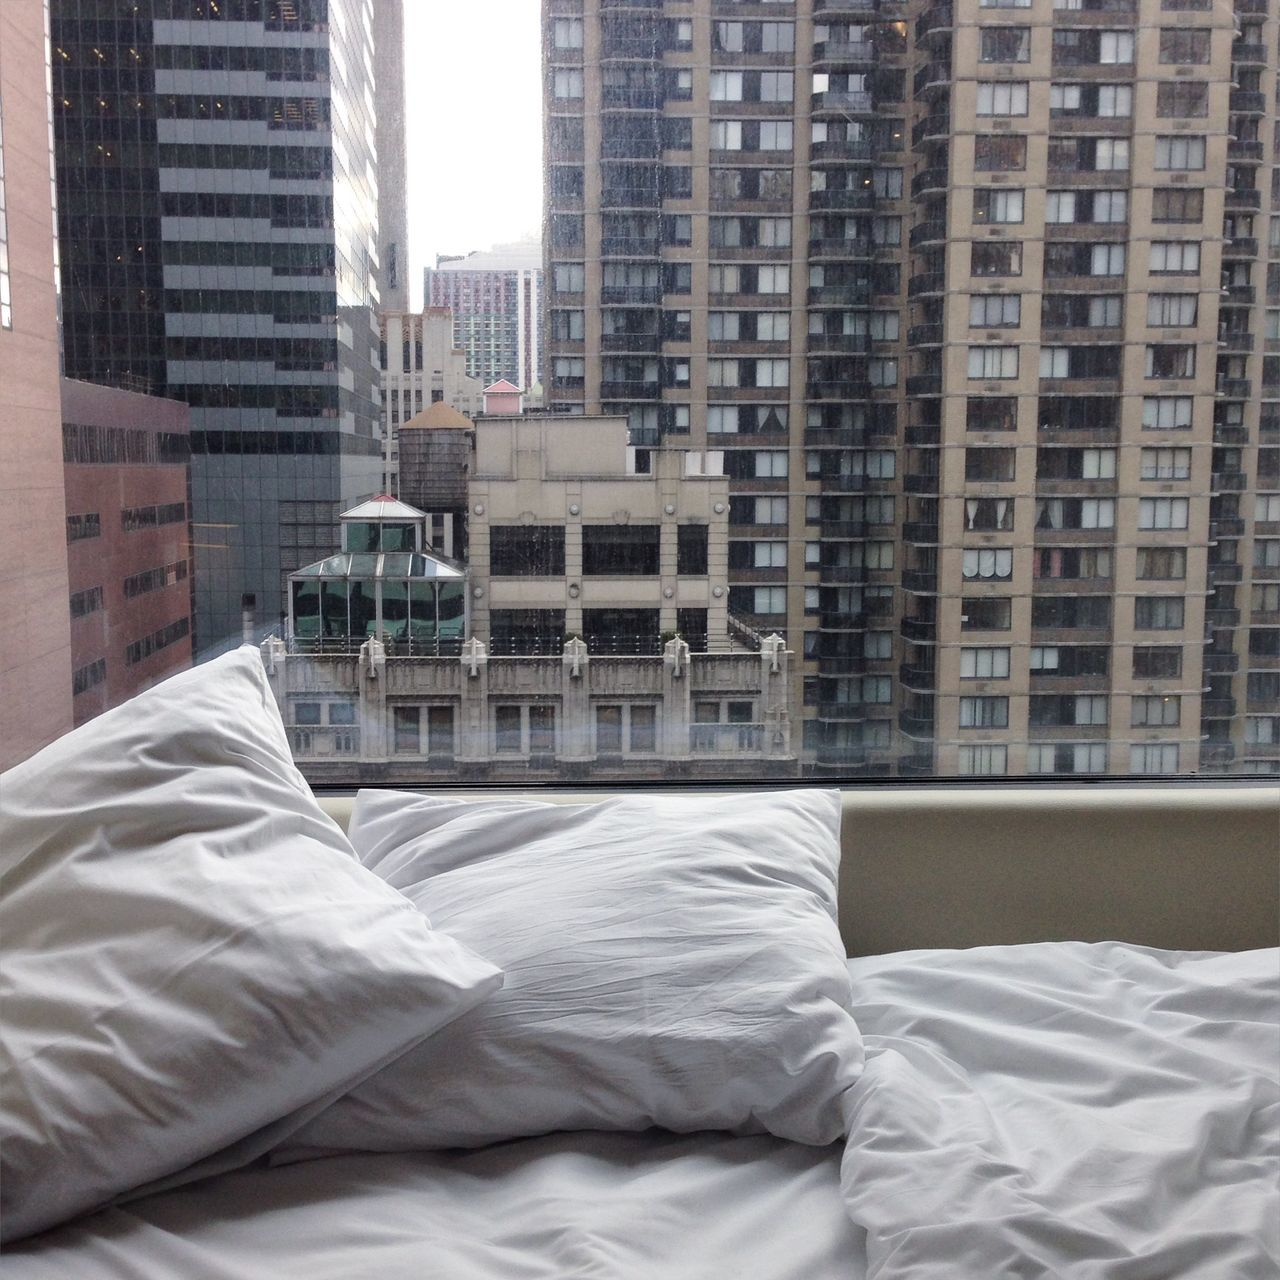 Bed and cushion by window with buildings in background